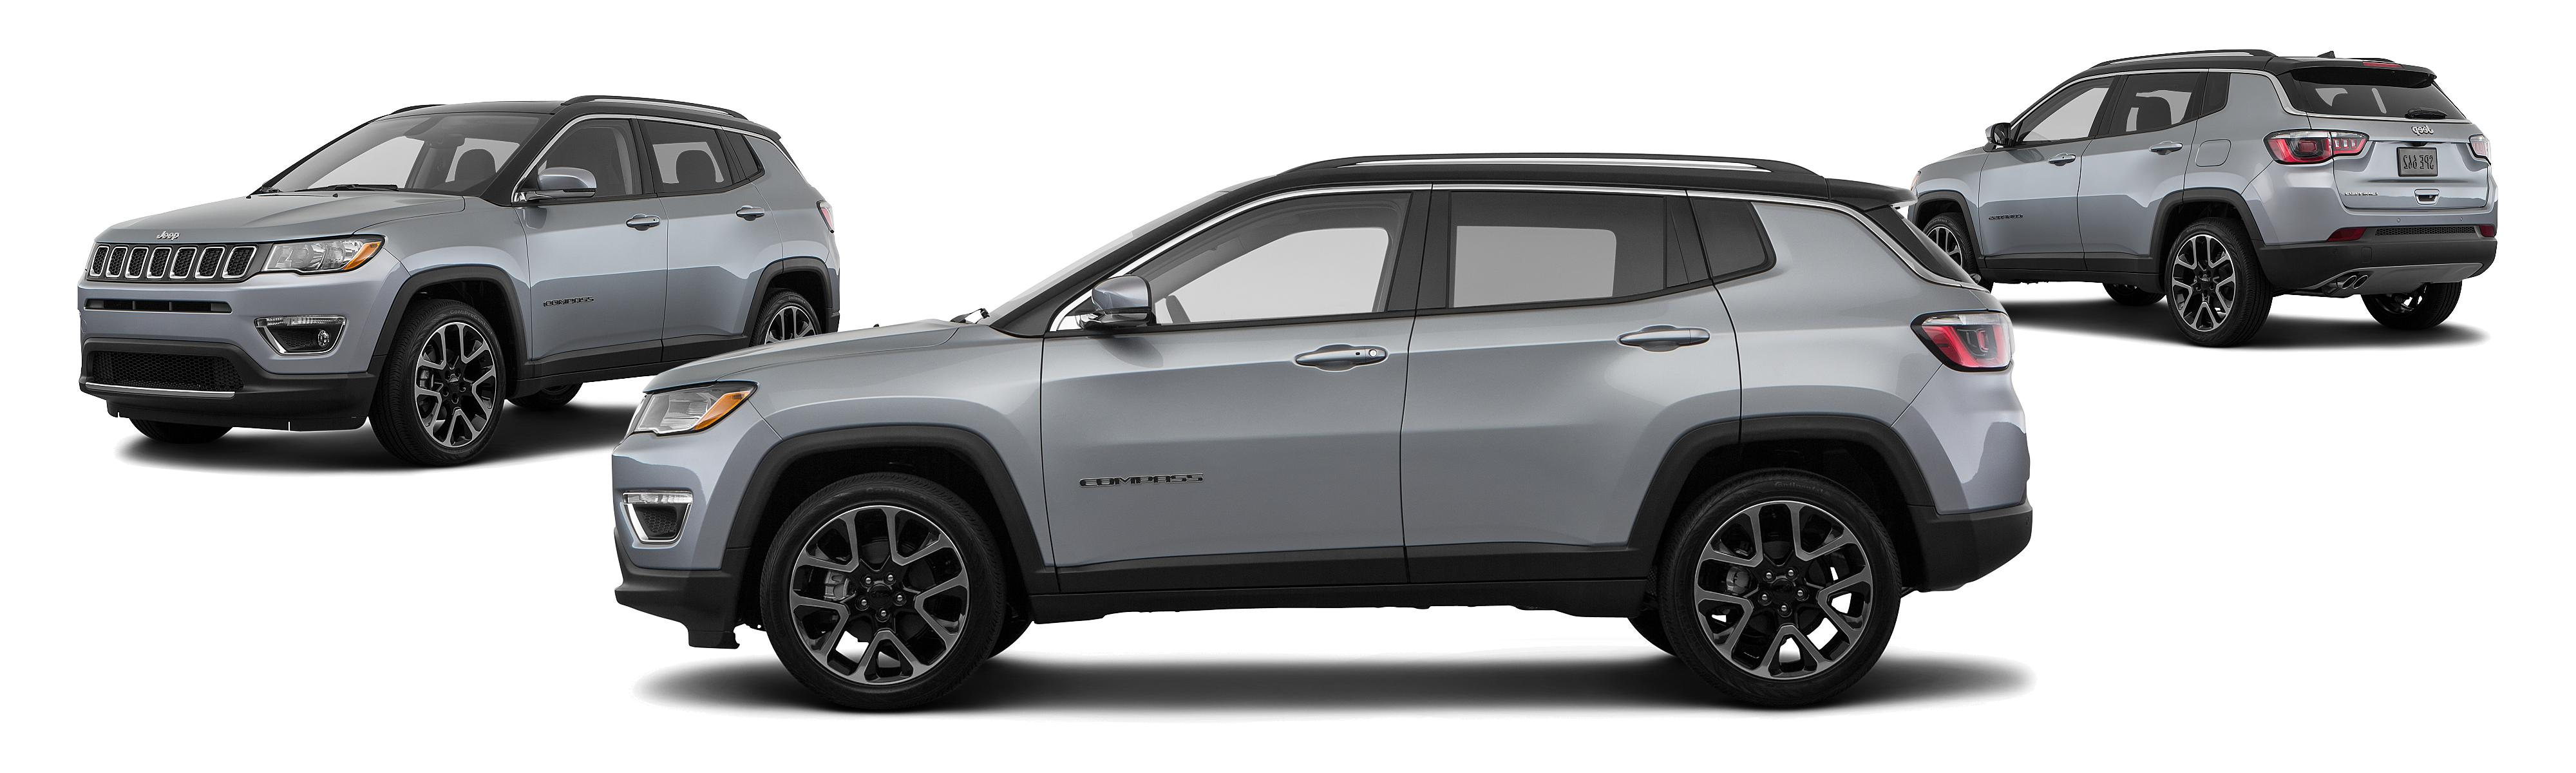 2018 Jeep Compass Limited 4dr Suv Research Groovecar